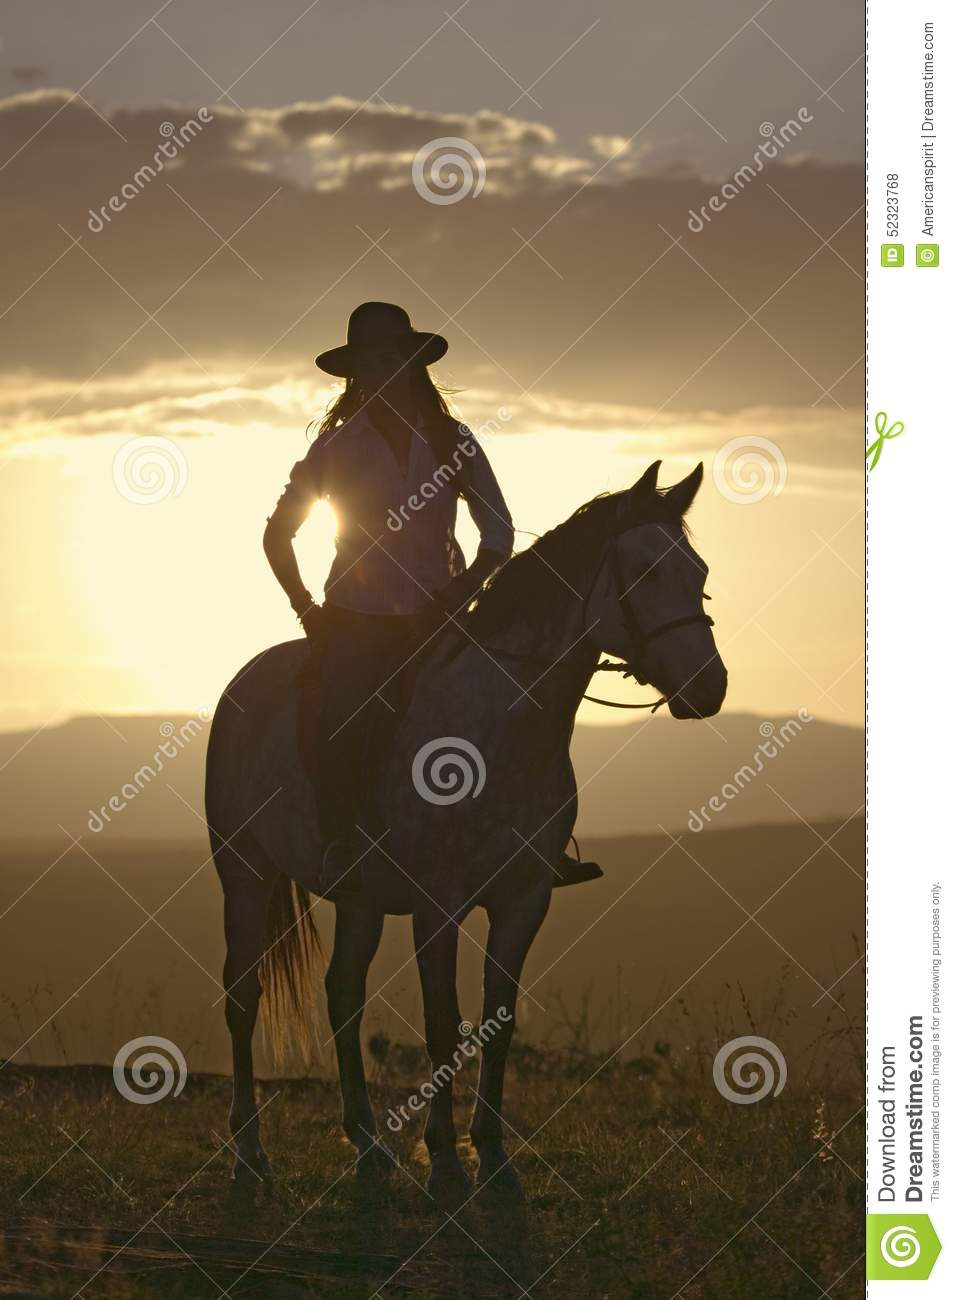 Download Female Horseback Rider And Horse Ride To Overlook At Lewa Wildlife Conservancy In North Kenya, Africa At Sunset Editorial Stock Photo - Image of domestic, lifestyle: 52323768